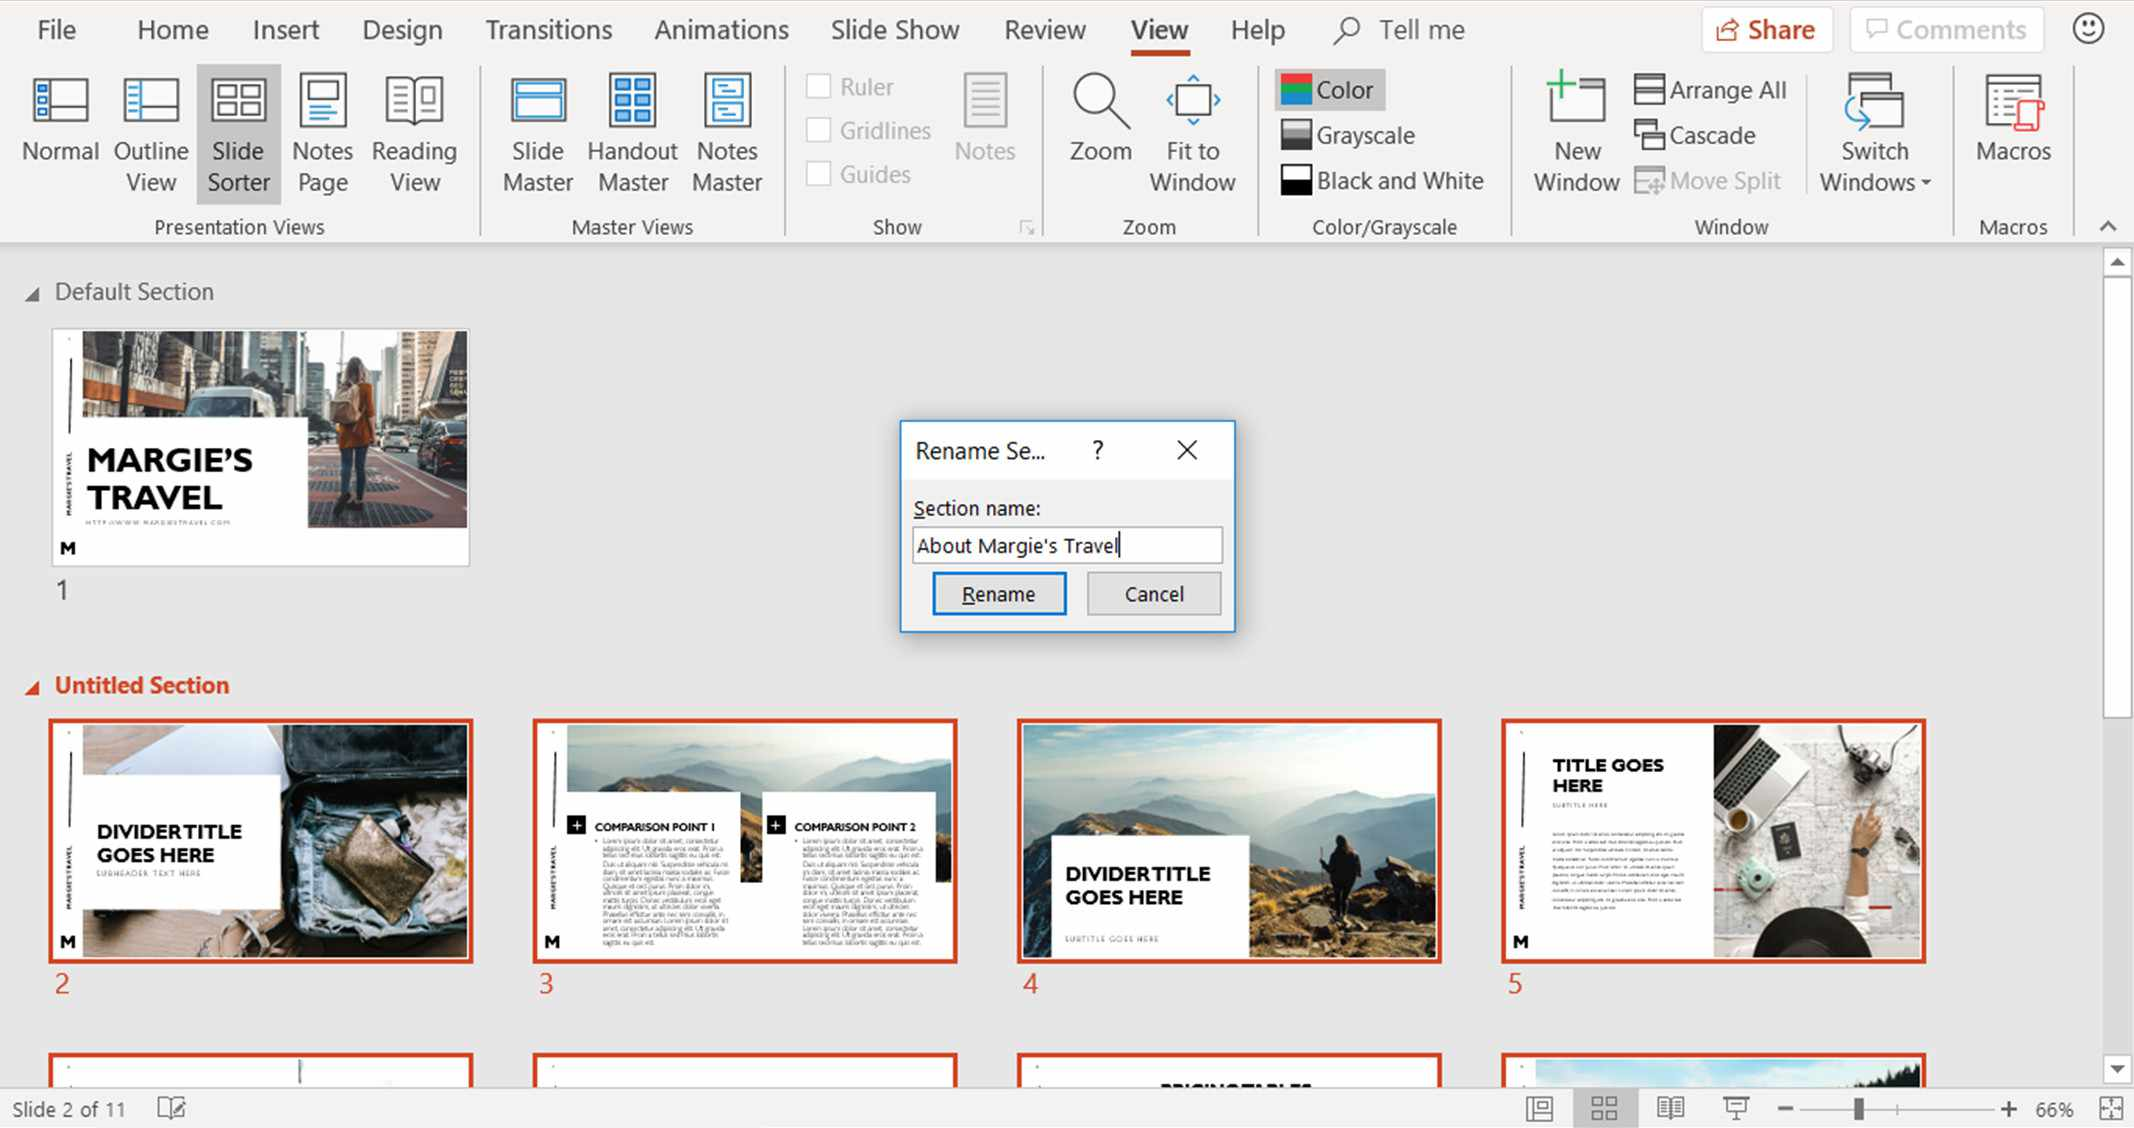 A screenshot showing how to change the name of a section in the PowerPoint Slide Sorter view